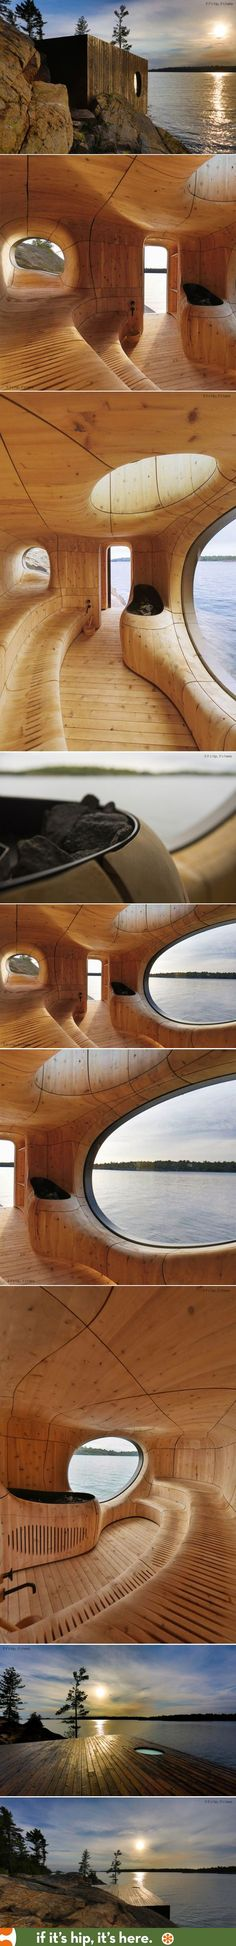 The Grotto Sauna is an Amorphic Prefab on the Edge of a Private Island 2d2bbe67b7